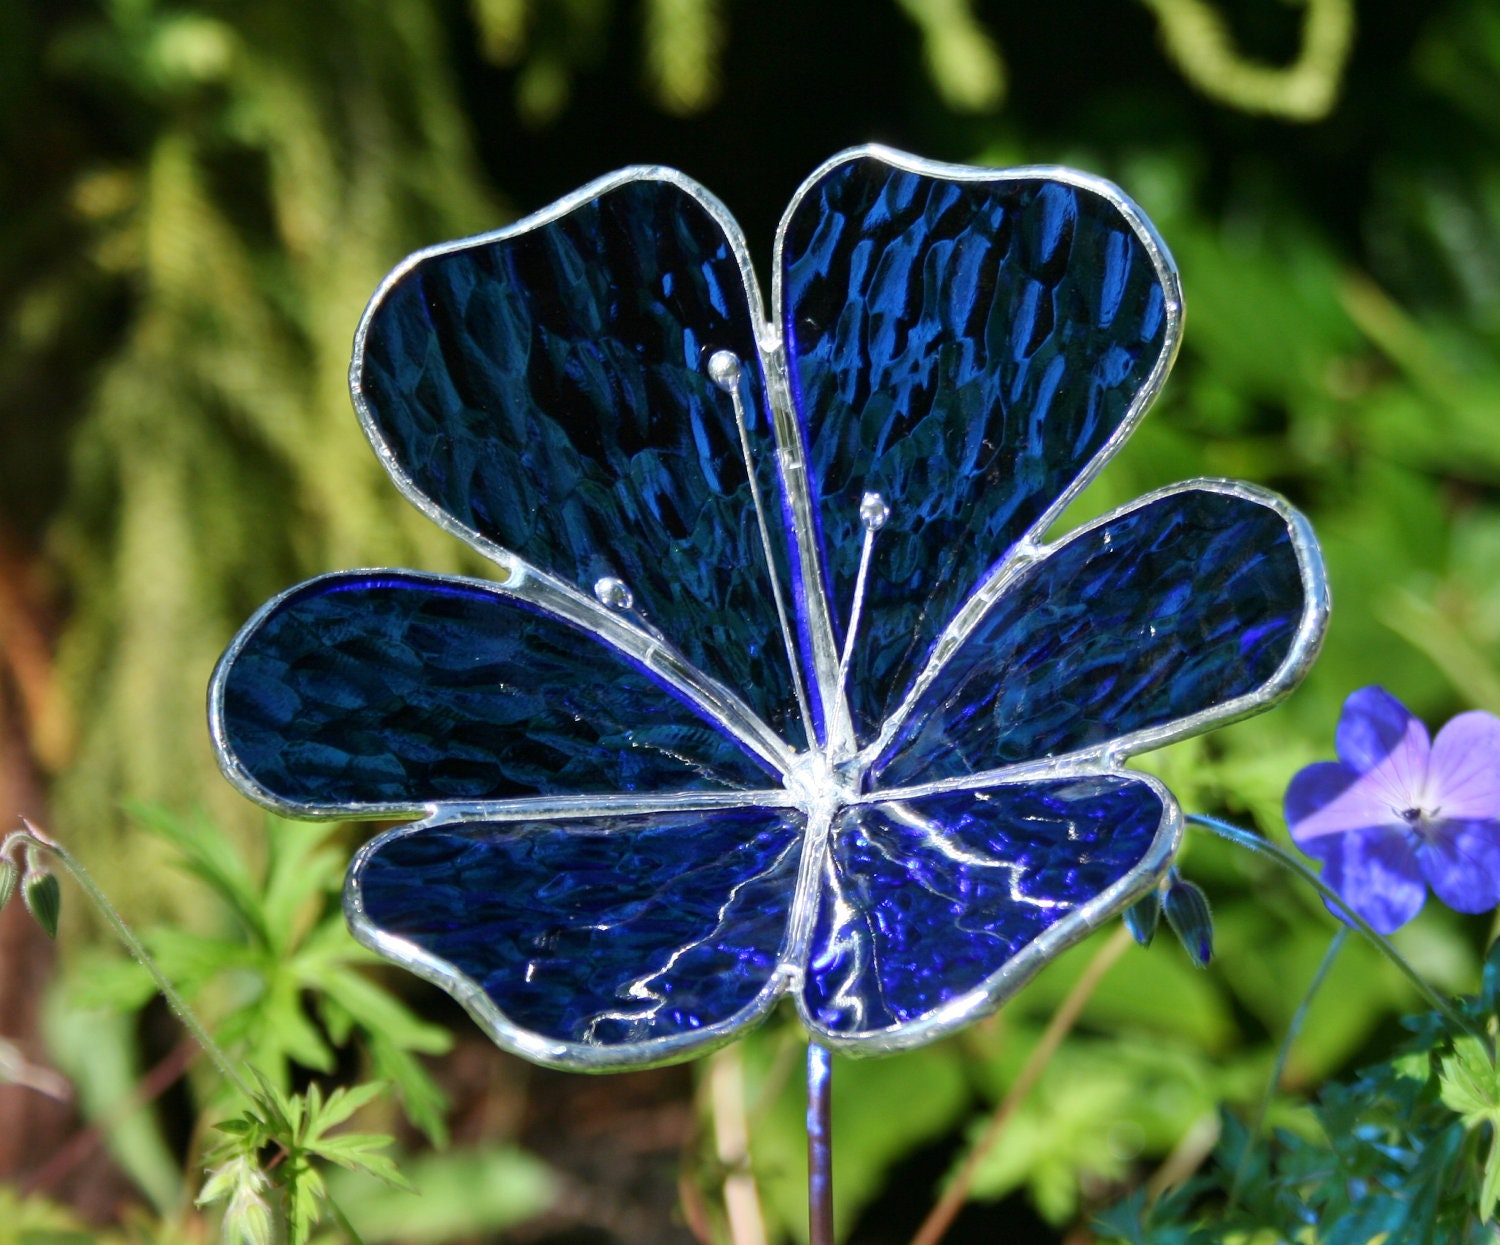 Stained glass royal blue flower garden ornament for Flower garden ornaments